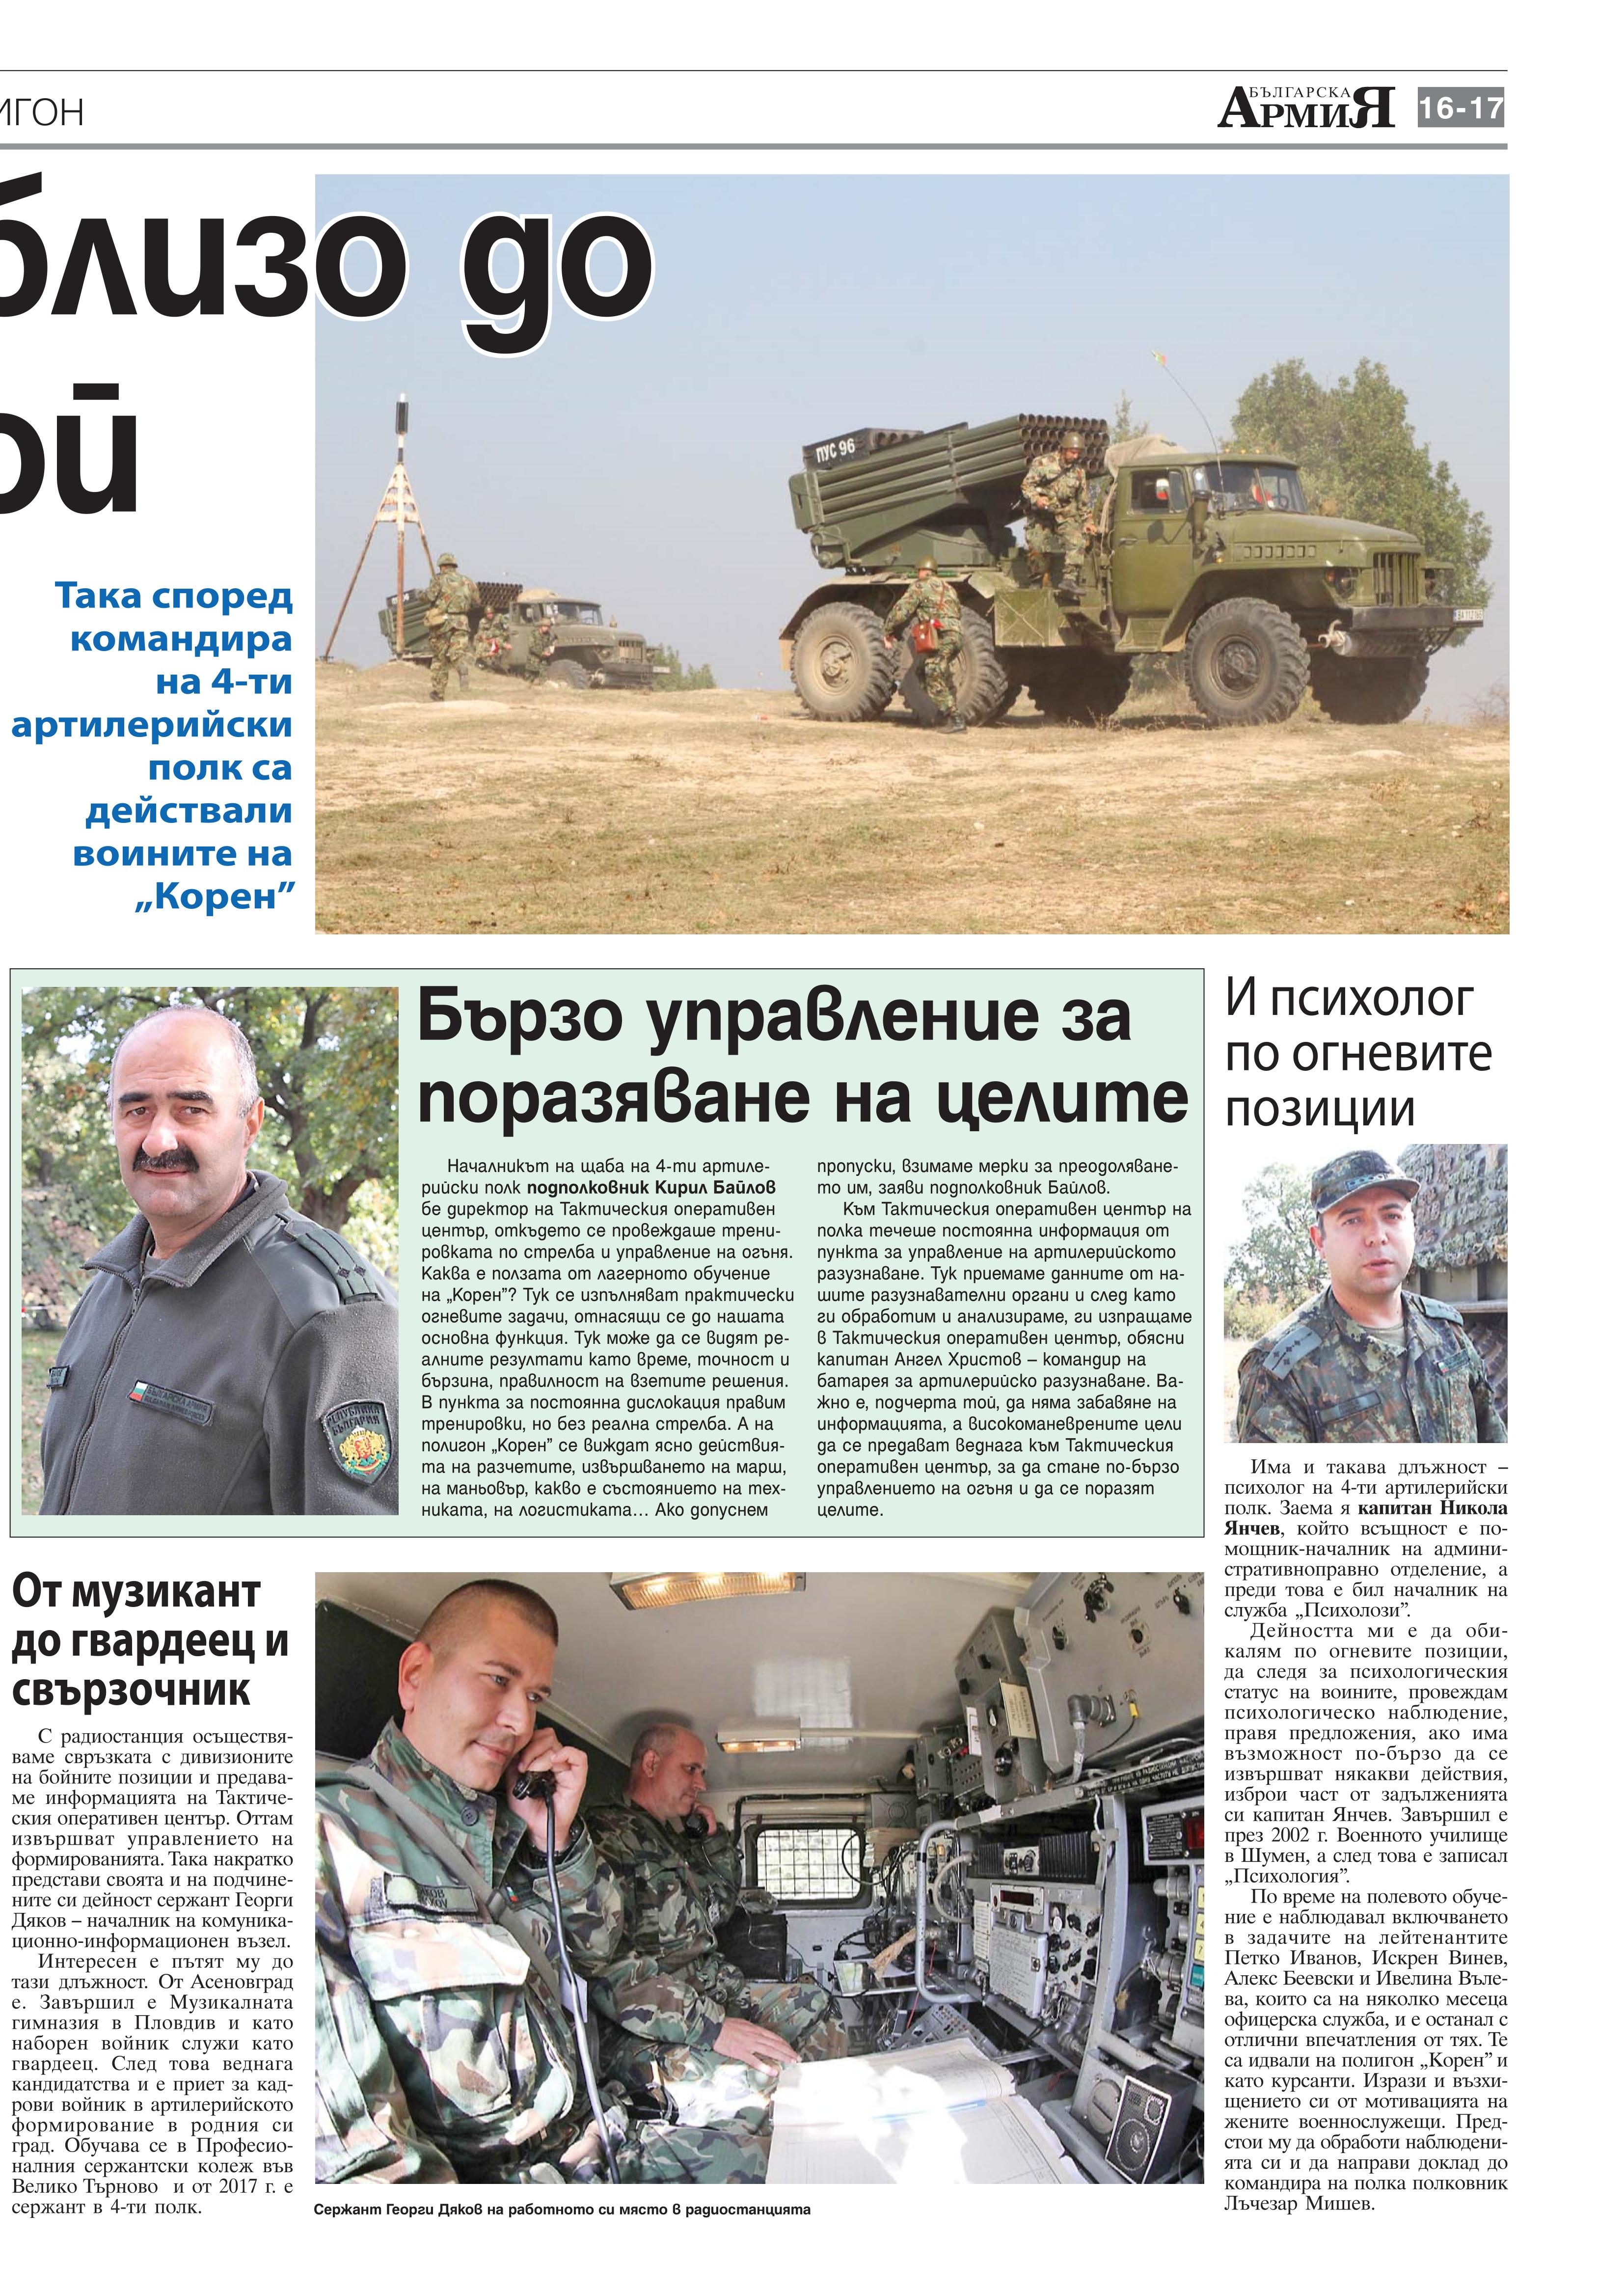 https://www.armymedia.bg/wp-content/uploads/2015/06/17.page1_-114.jpg